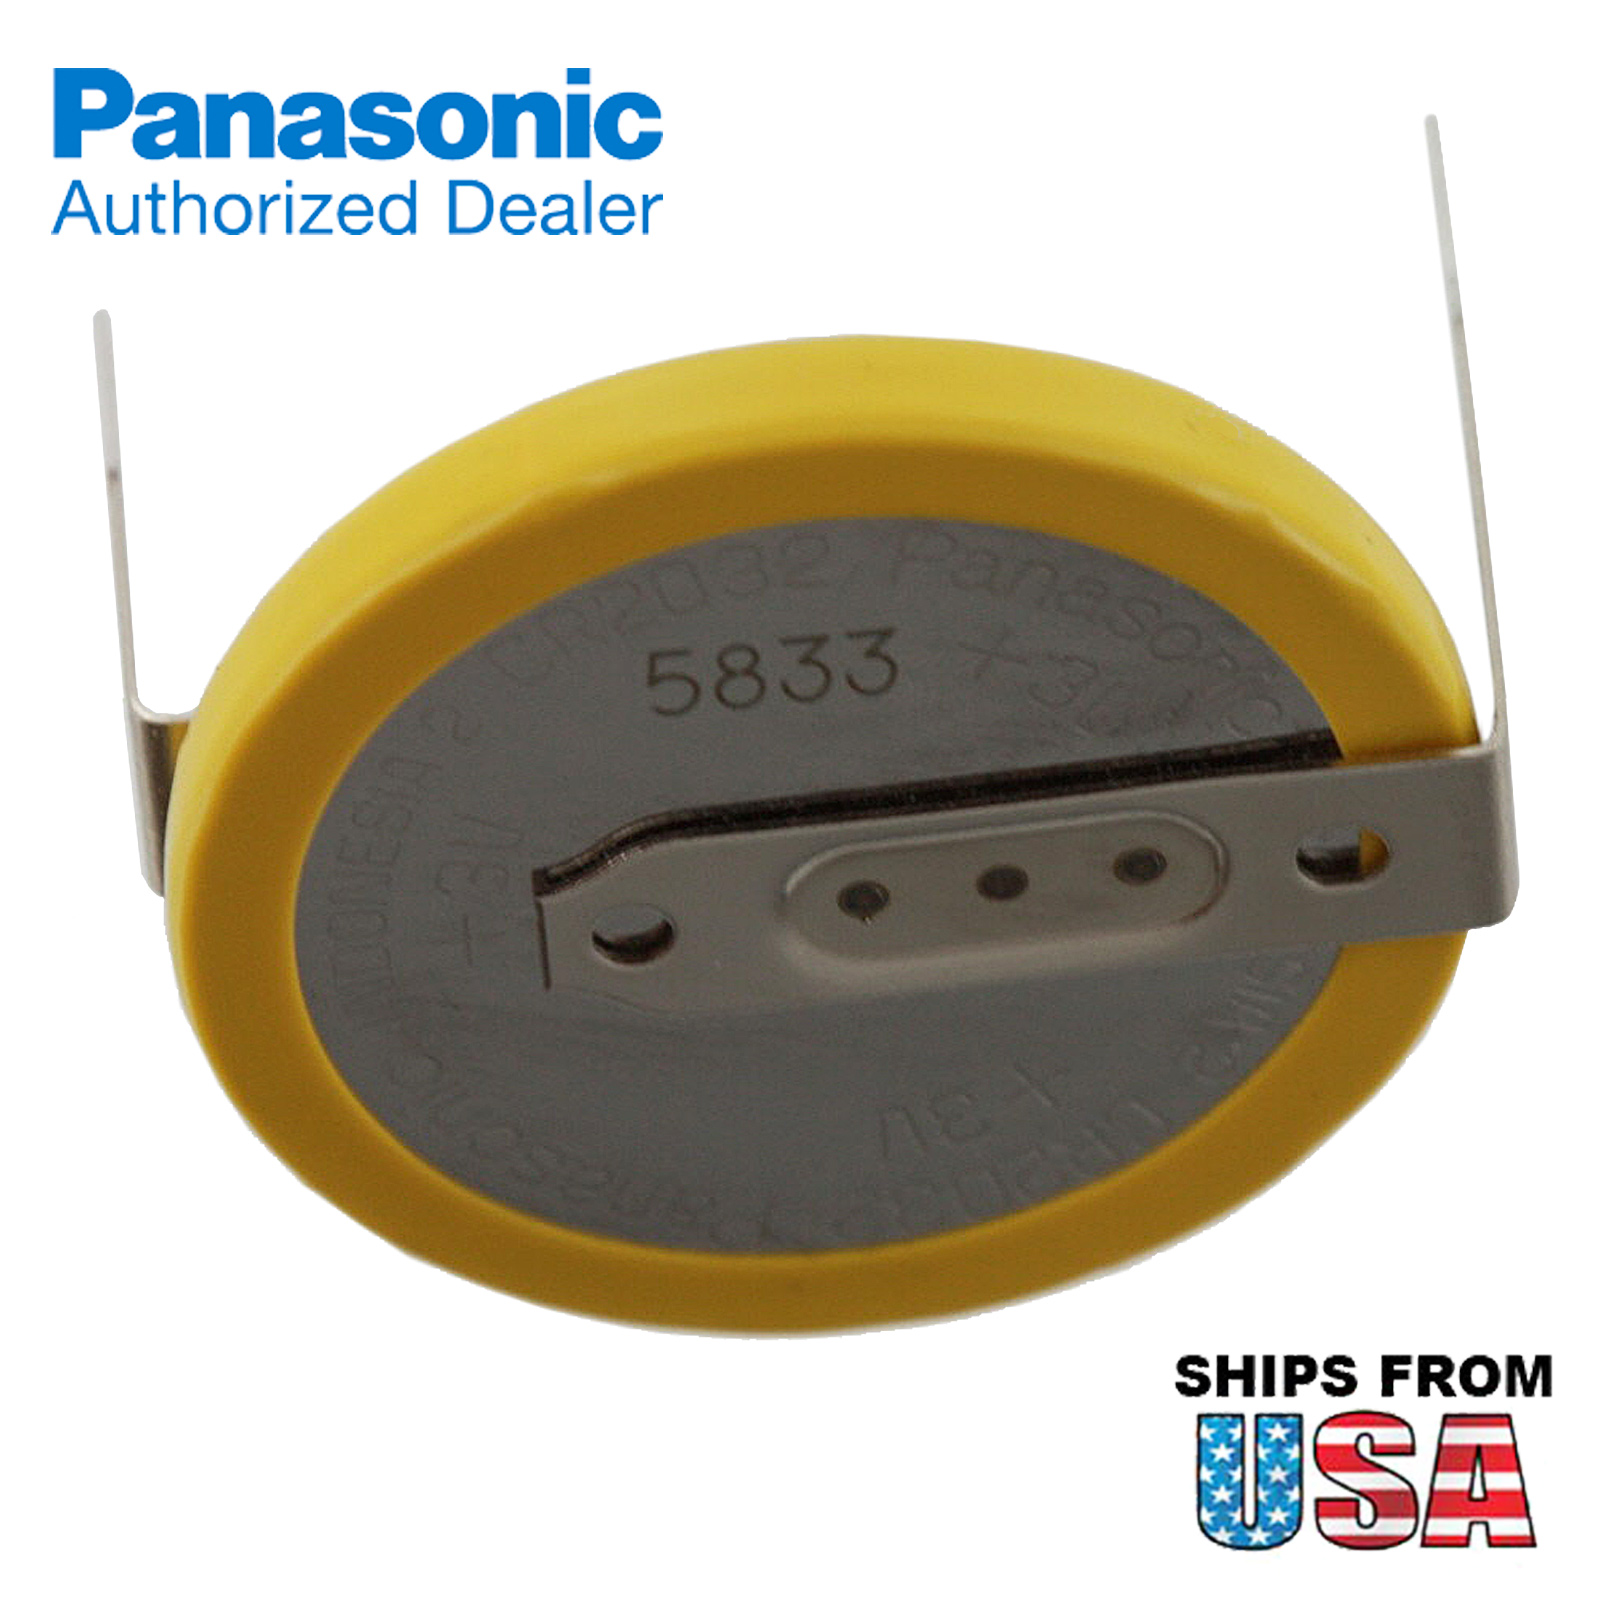 panasonic cr 2032 hmn 3v lithium coin battery horz 2 pins for pc cmos real time ebay. Black Bedroom Furniture Sets. Home Design Ideas